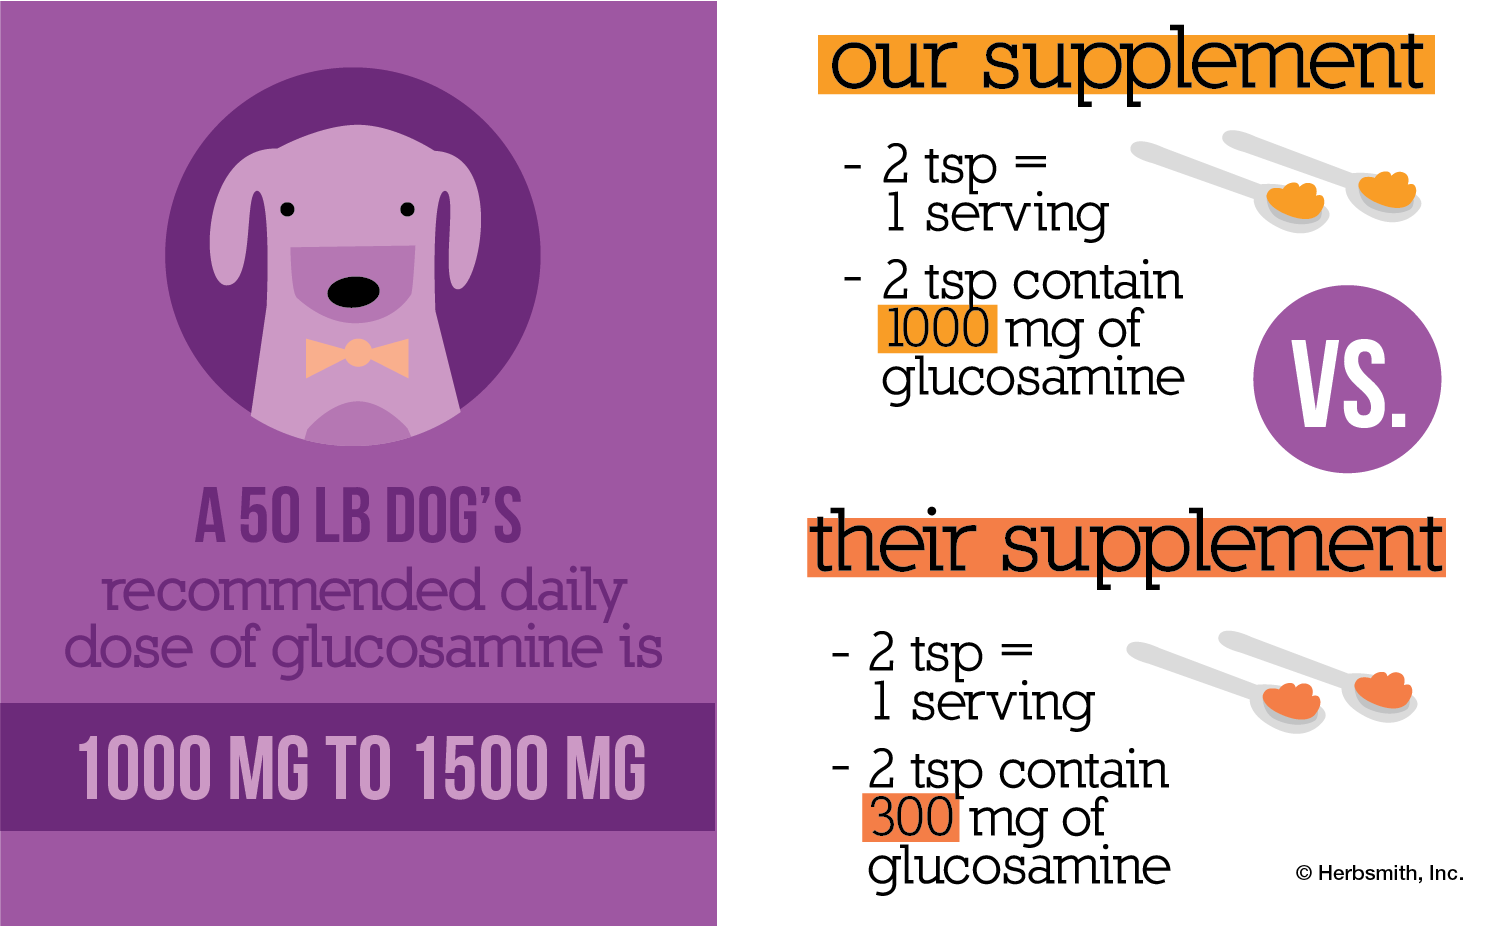 Glucosamine supplements: servings matter! A 50 lb dog should have 1000 - 1500 mg of glucosamine a day. Our supplement is 2 tsp per serving, 2 tsp containing 1000 mg of glucosamine. A competitor's serving size is also 2 tsp, but 2 tsp only contains 300 mg of glucosamine.